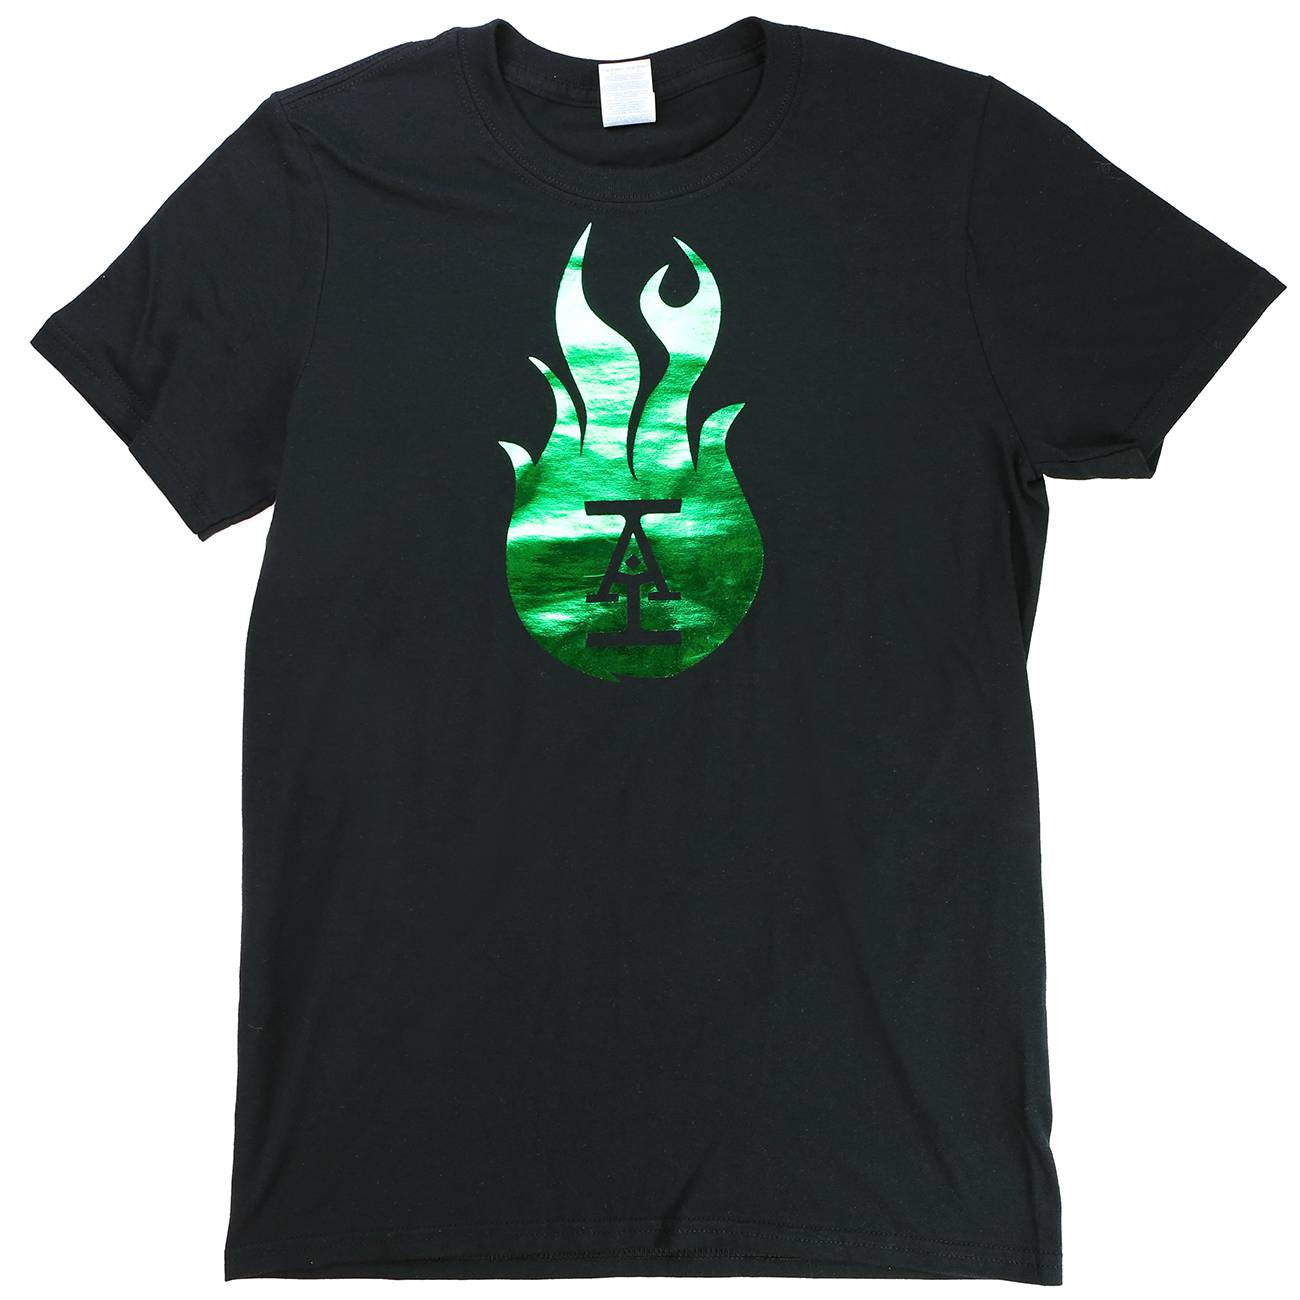 Acquisitions Incorporated Green Flame Tee